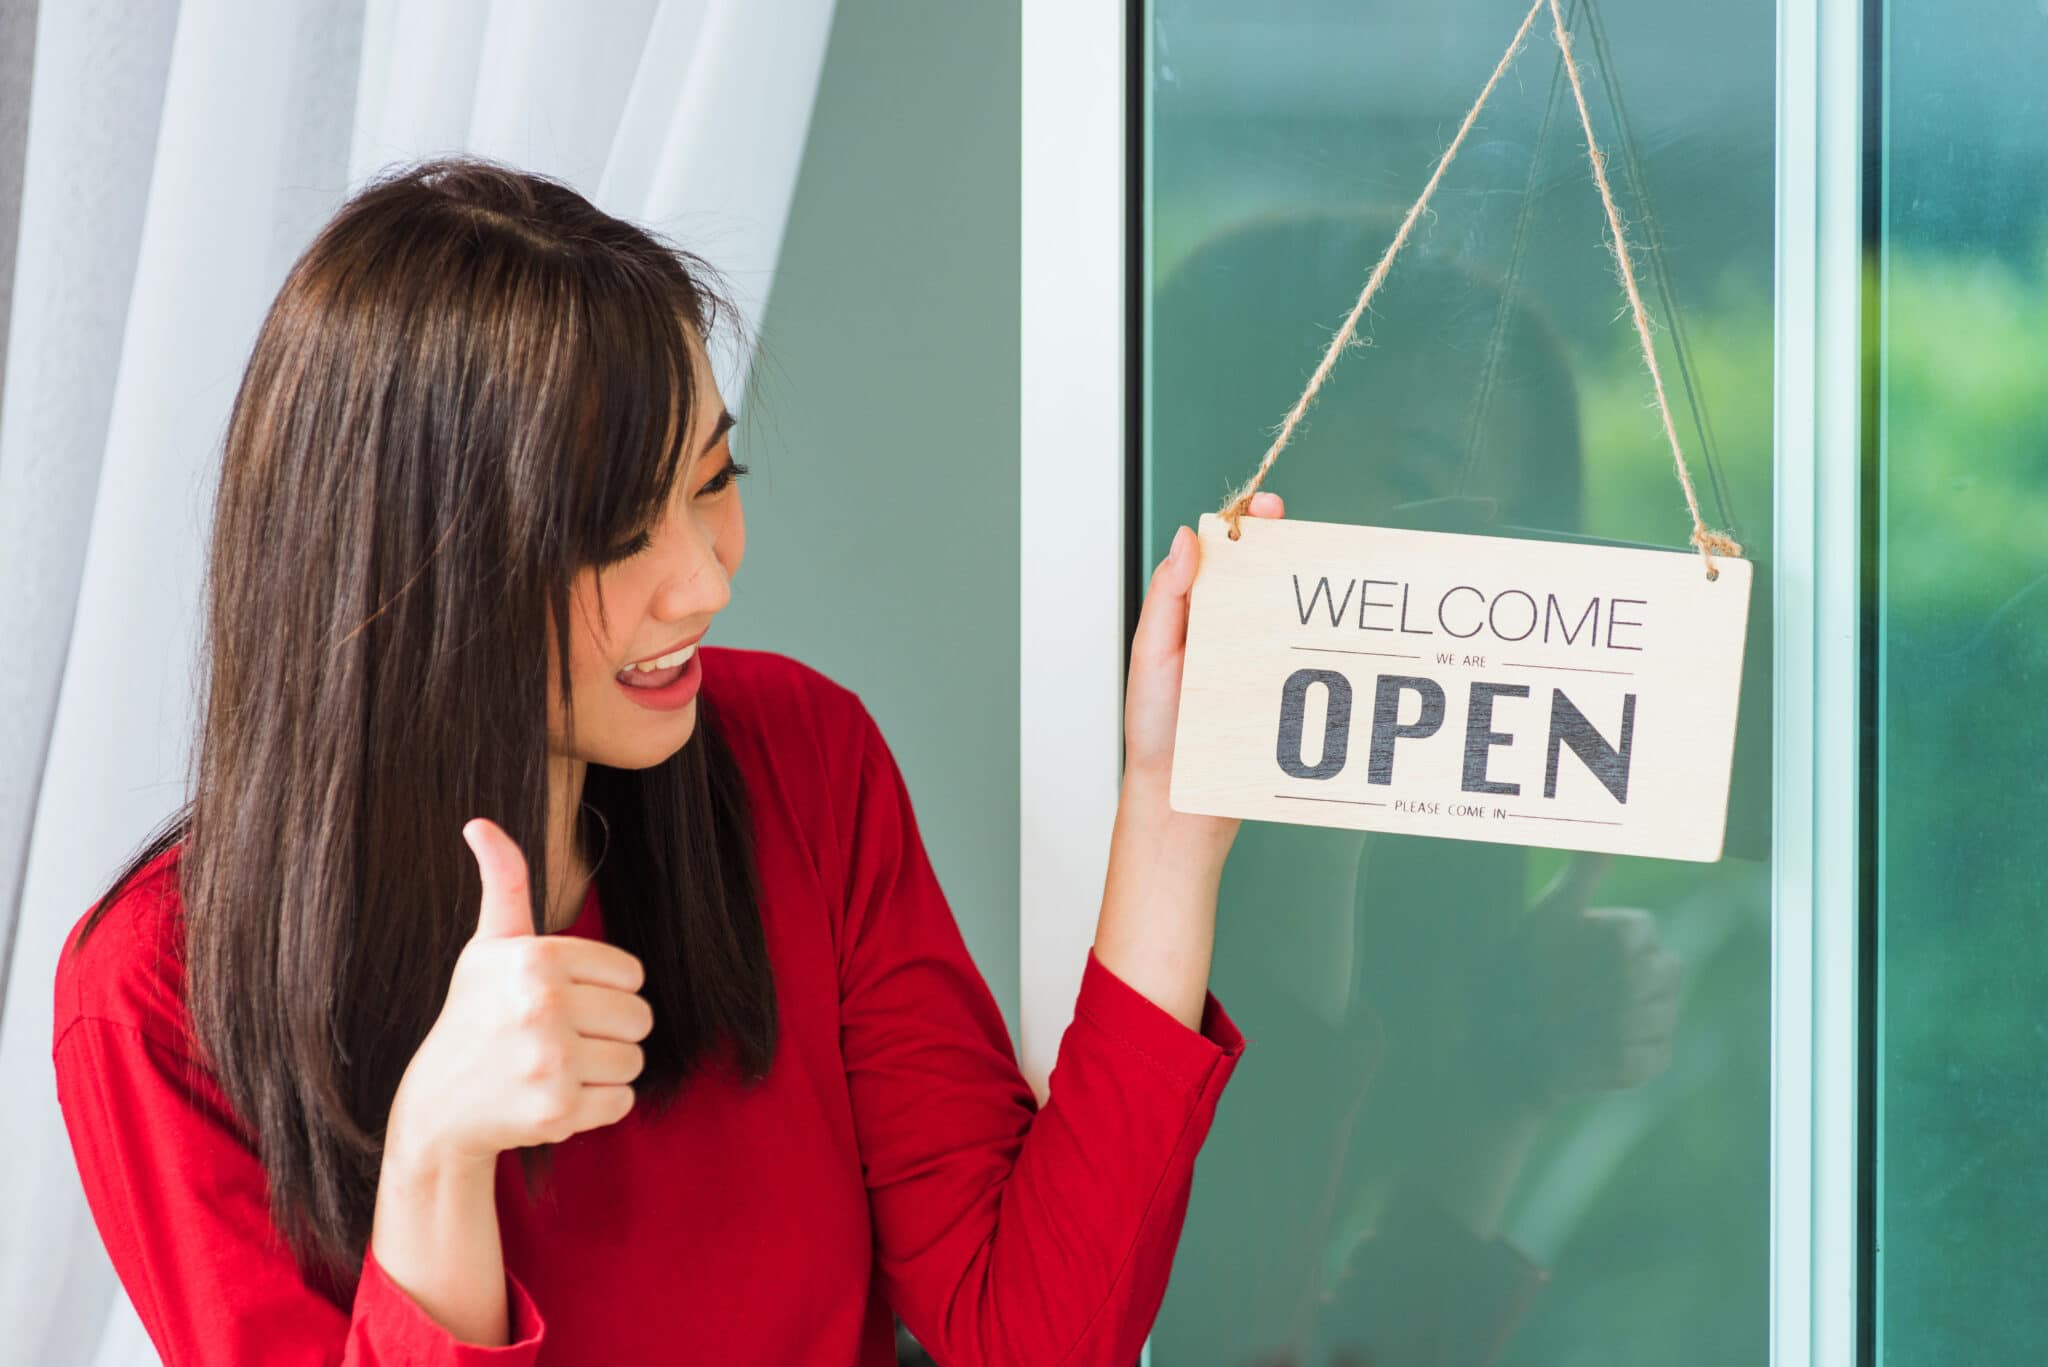 Small business owner opens business